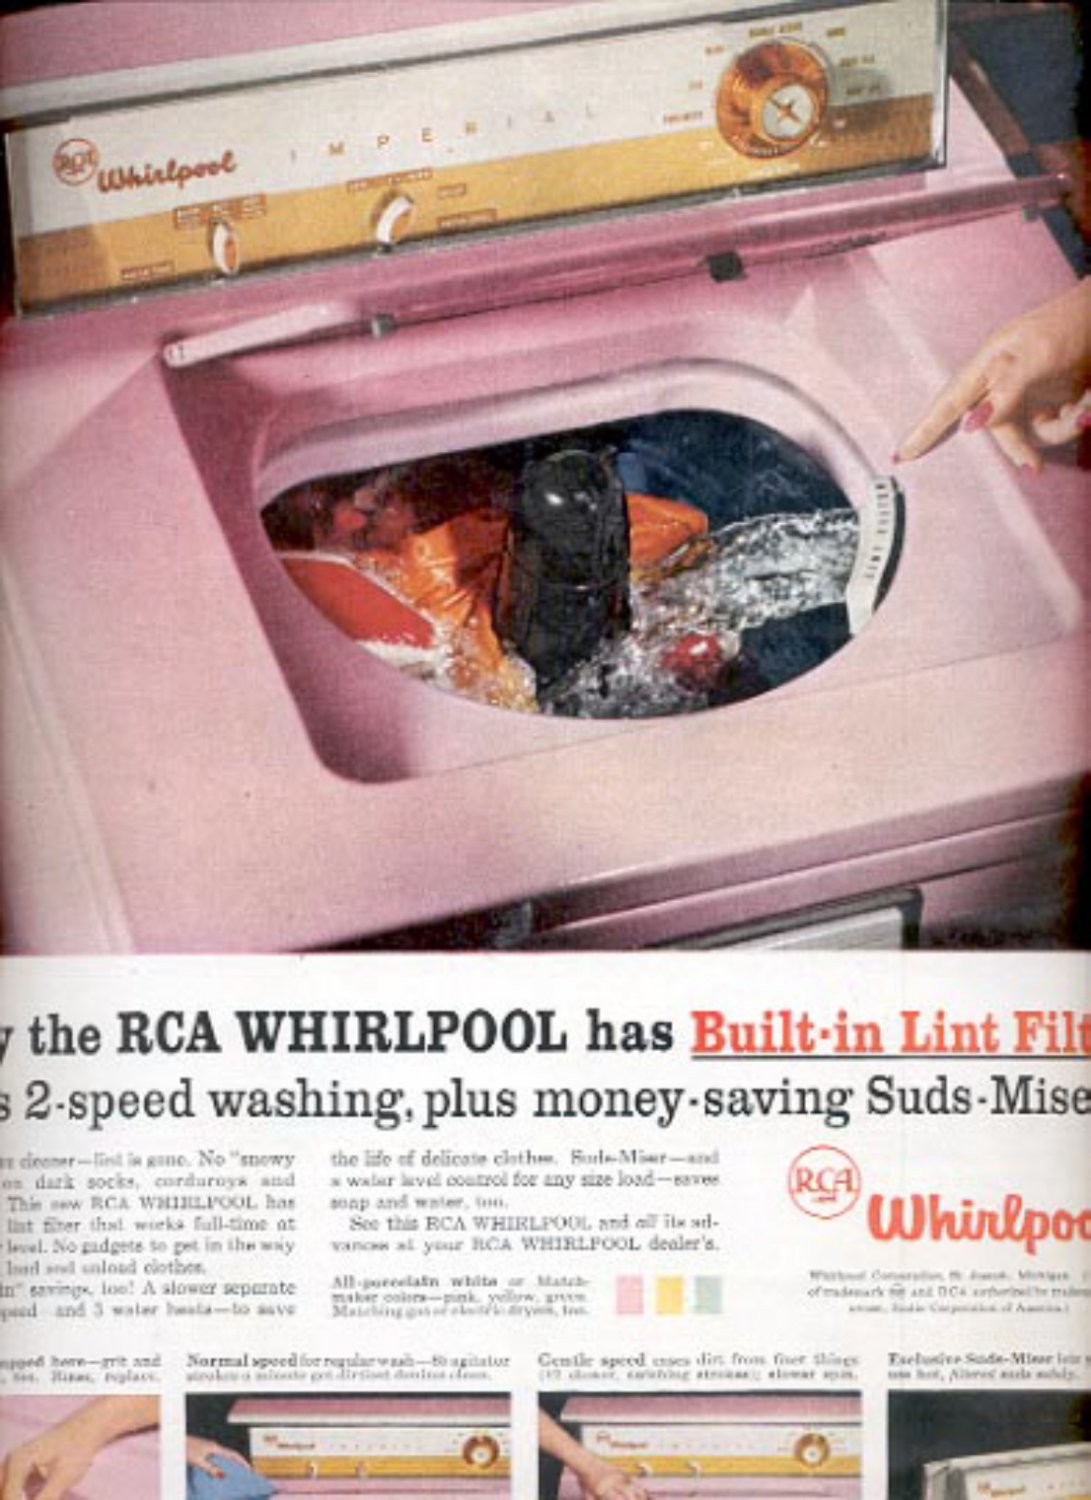 1957   RCA Whirlpool has Built-in lint filter  ad (# 4976)